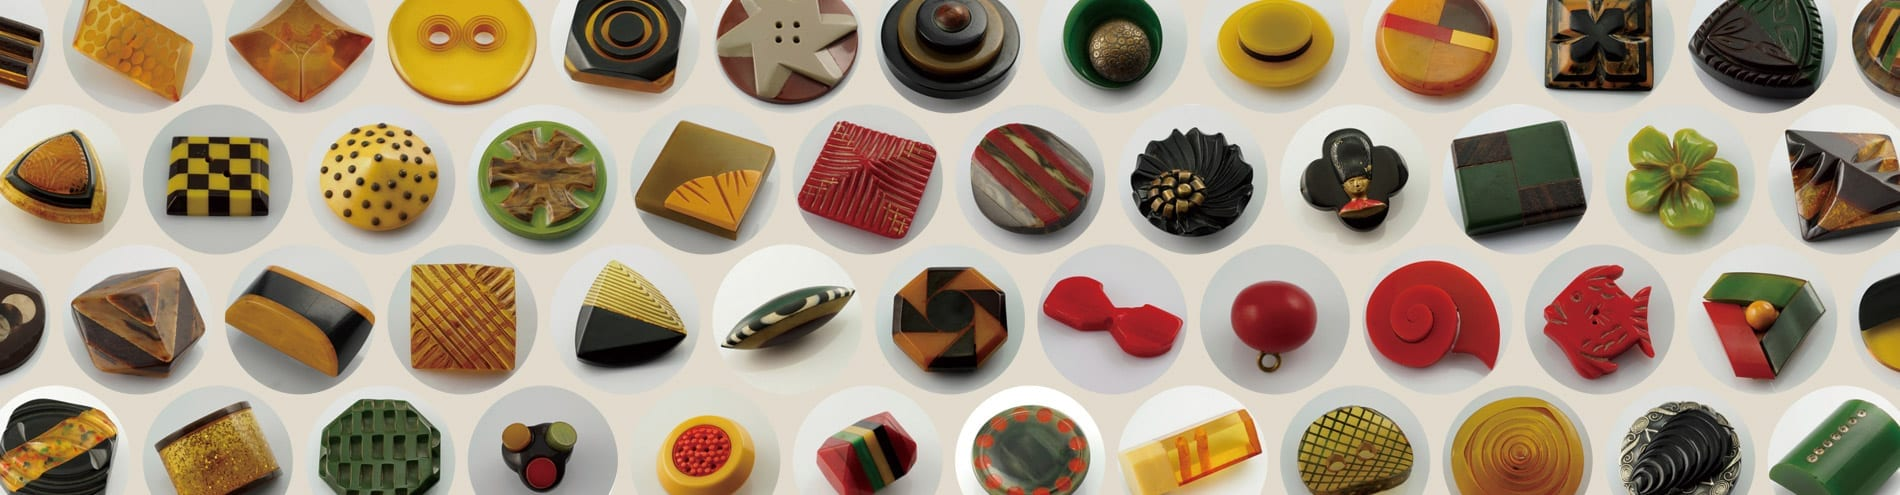 Button Gallery Bakelite